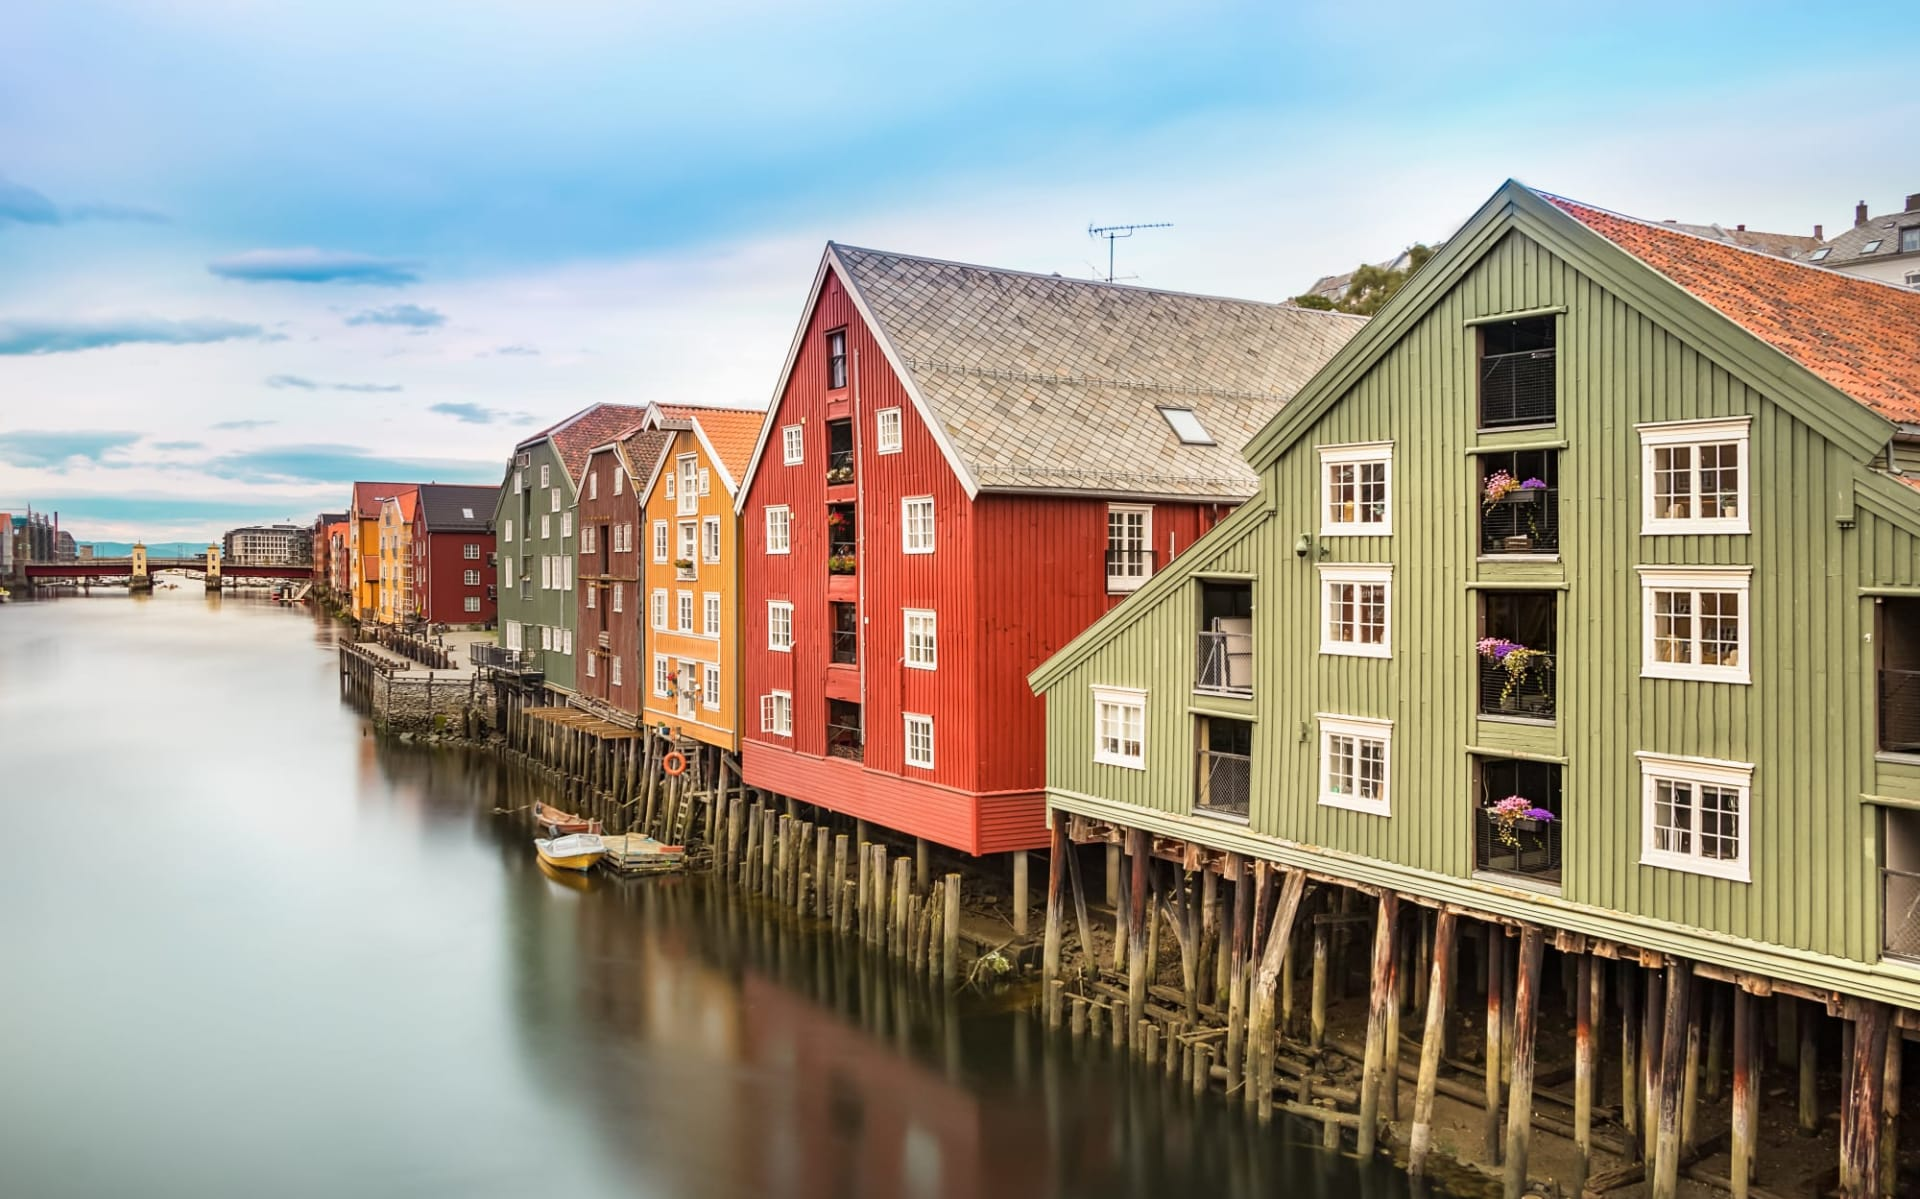 Scandic Nidelven in Trondheim: The old city of Trondheim with their colorful houses and the Nidelva River, Norway